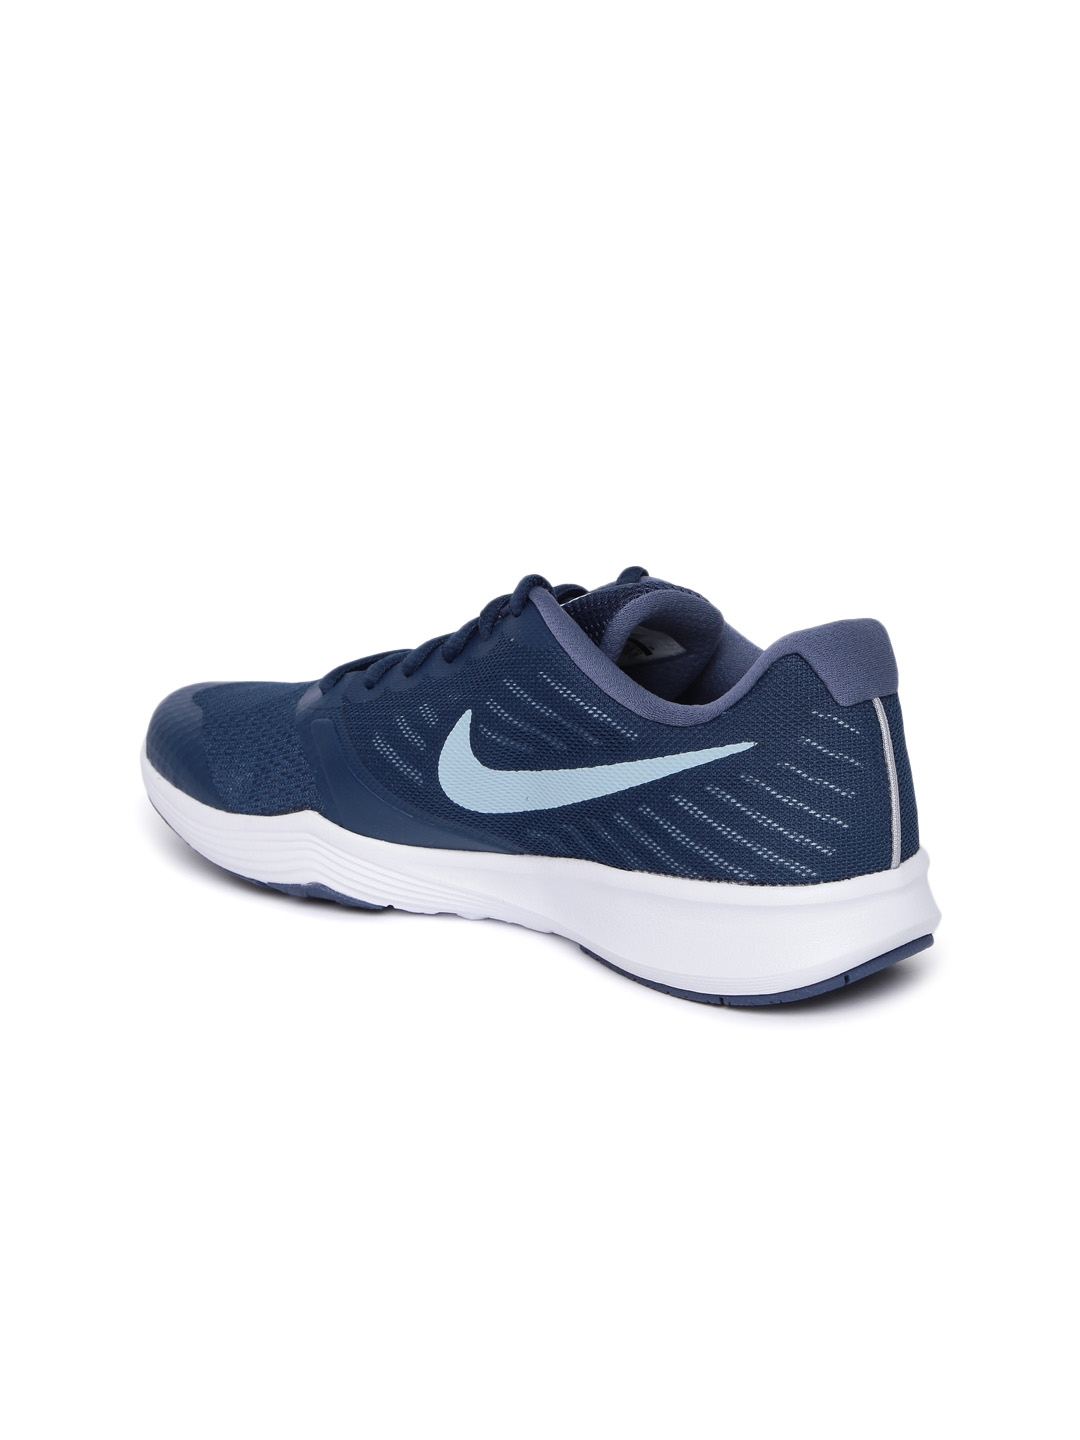 4426772be62c Buy Nike Women Navy Blue WMNS NIKE CITY TRAINER Training Or Gym ...